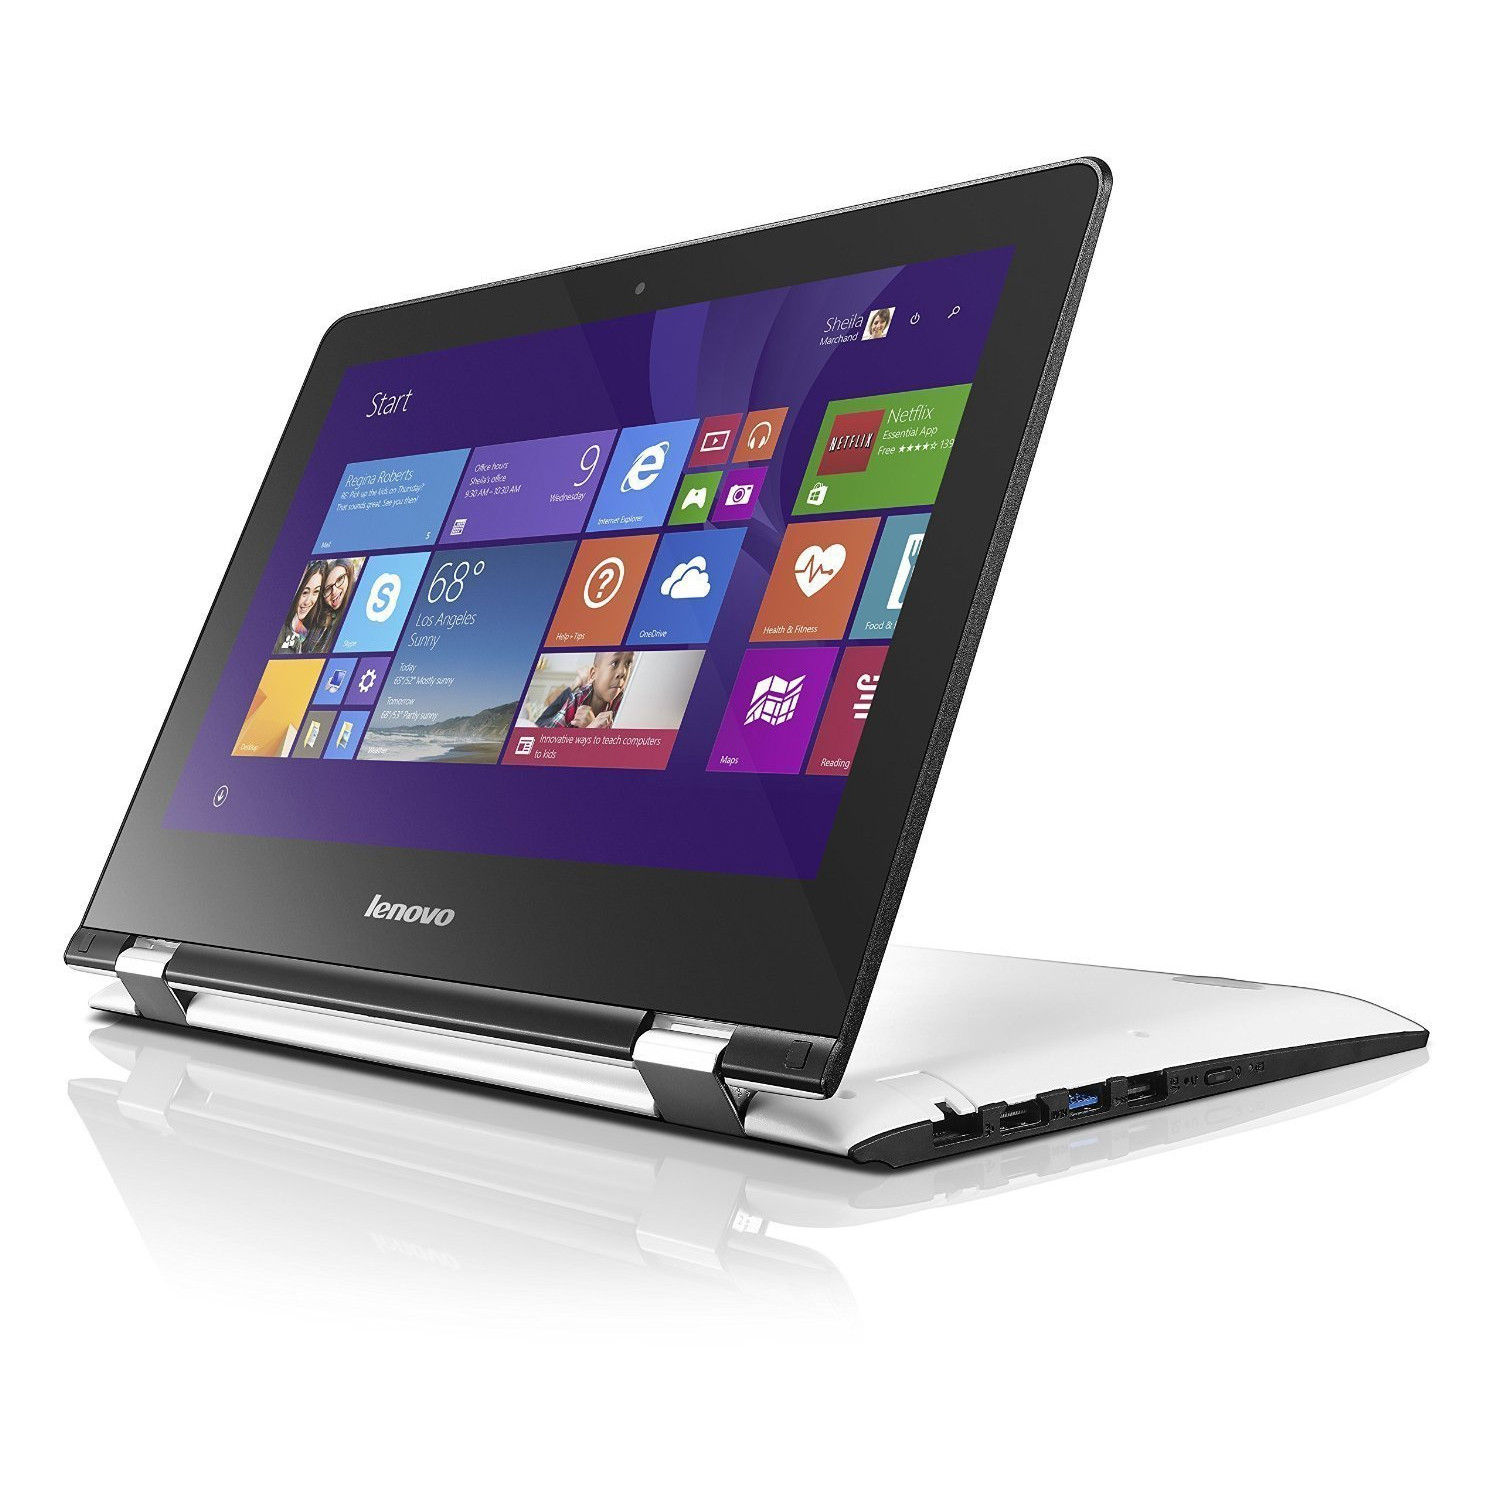 lenovo-yoga-300-5tid-4gb-11-6